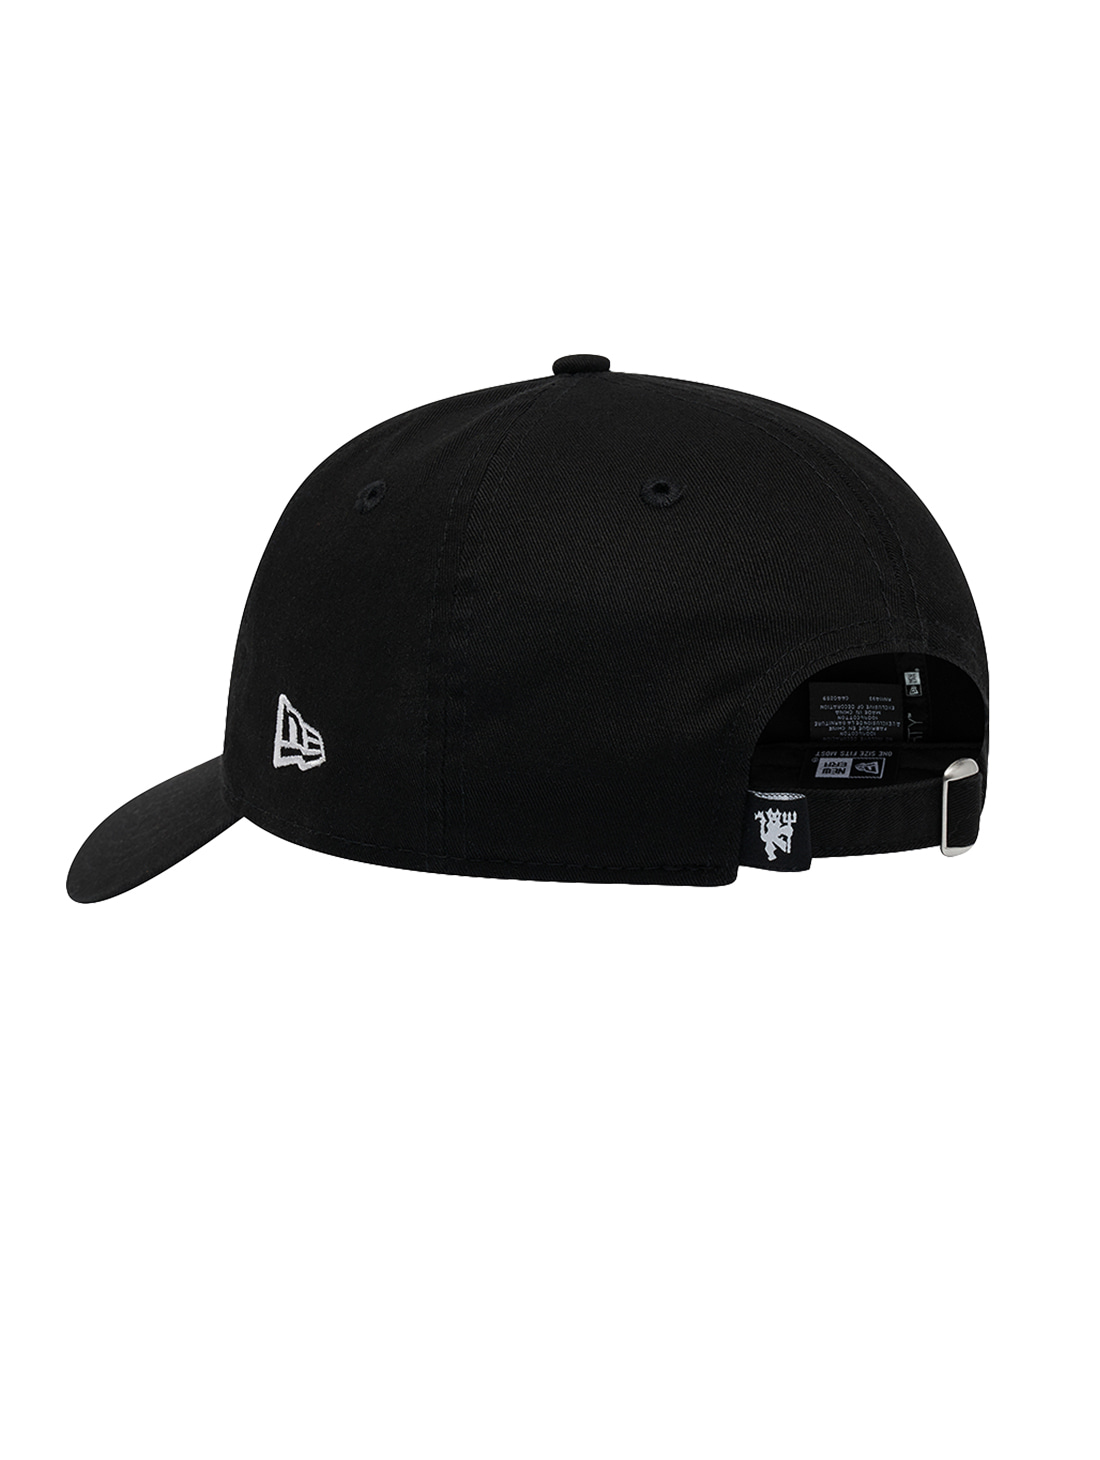 GOALSTUDIO MAN U 940UNST BALL CAP - BLACK